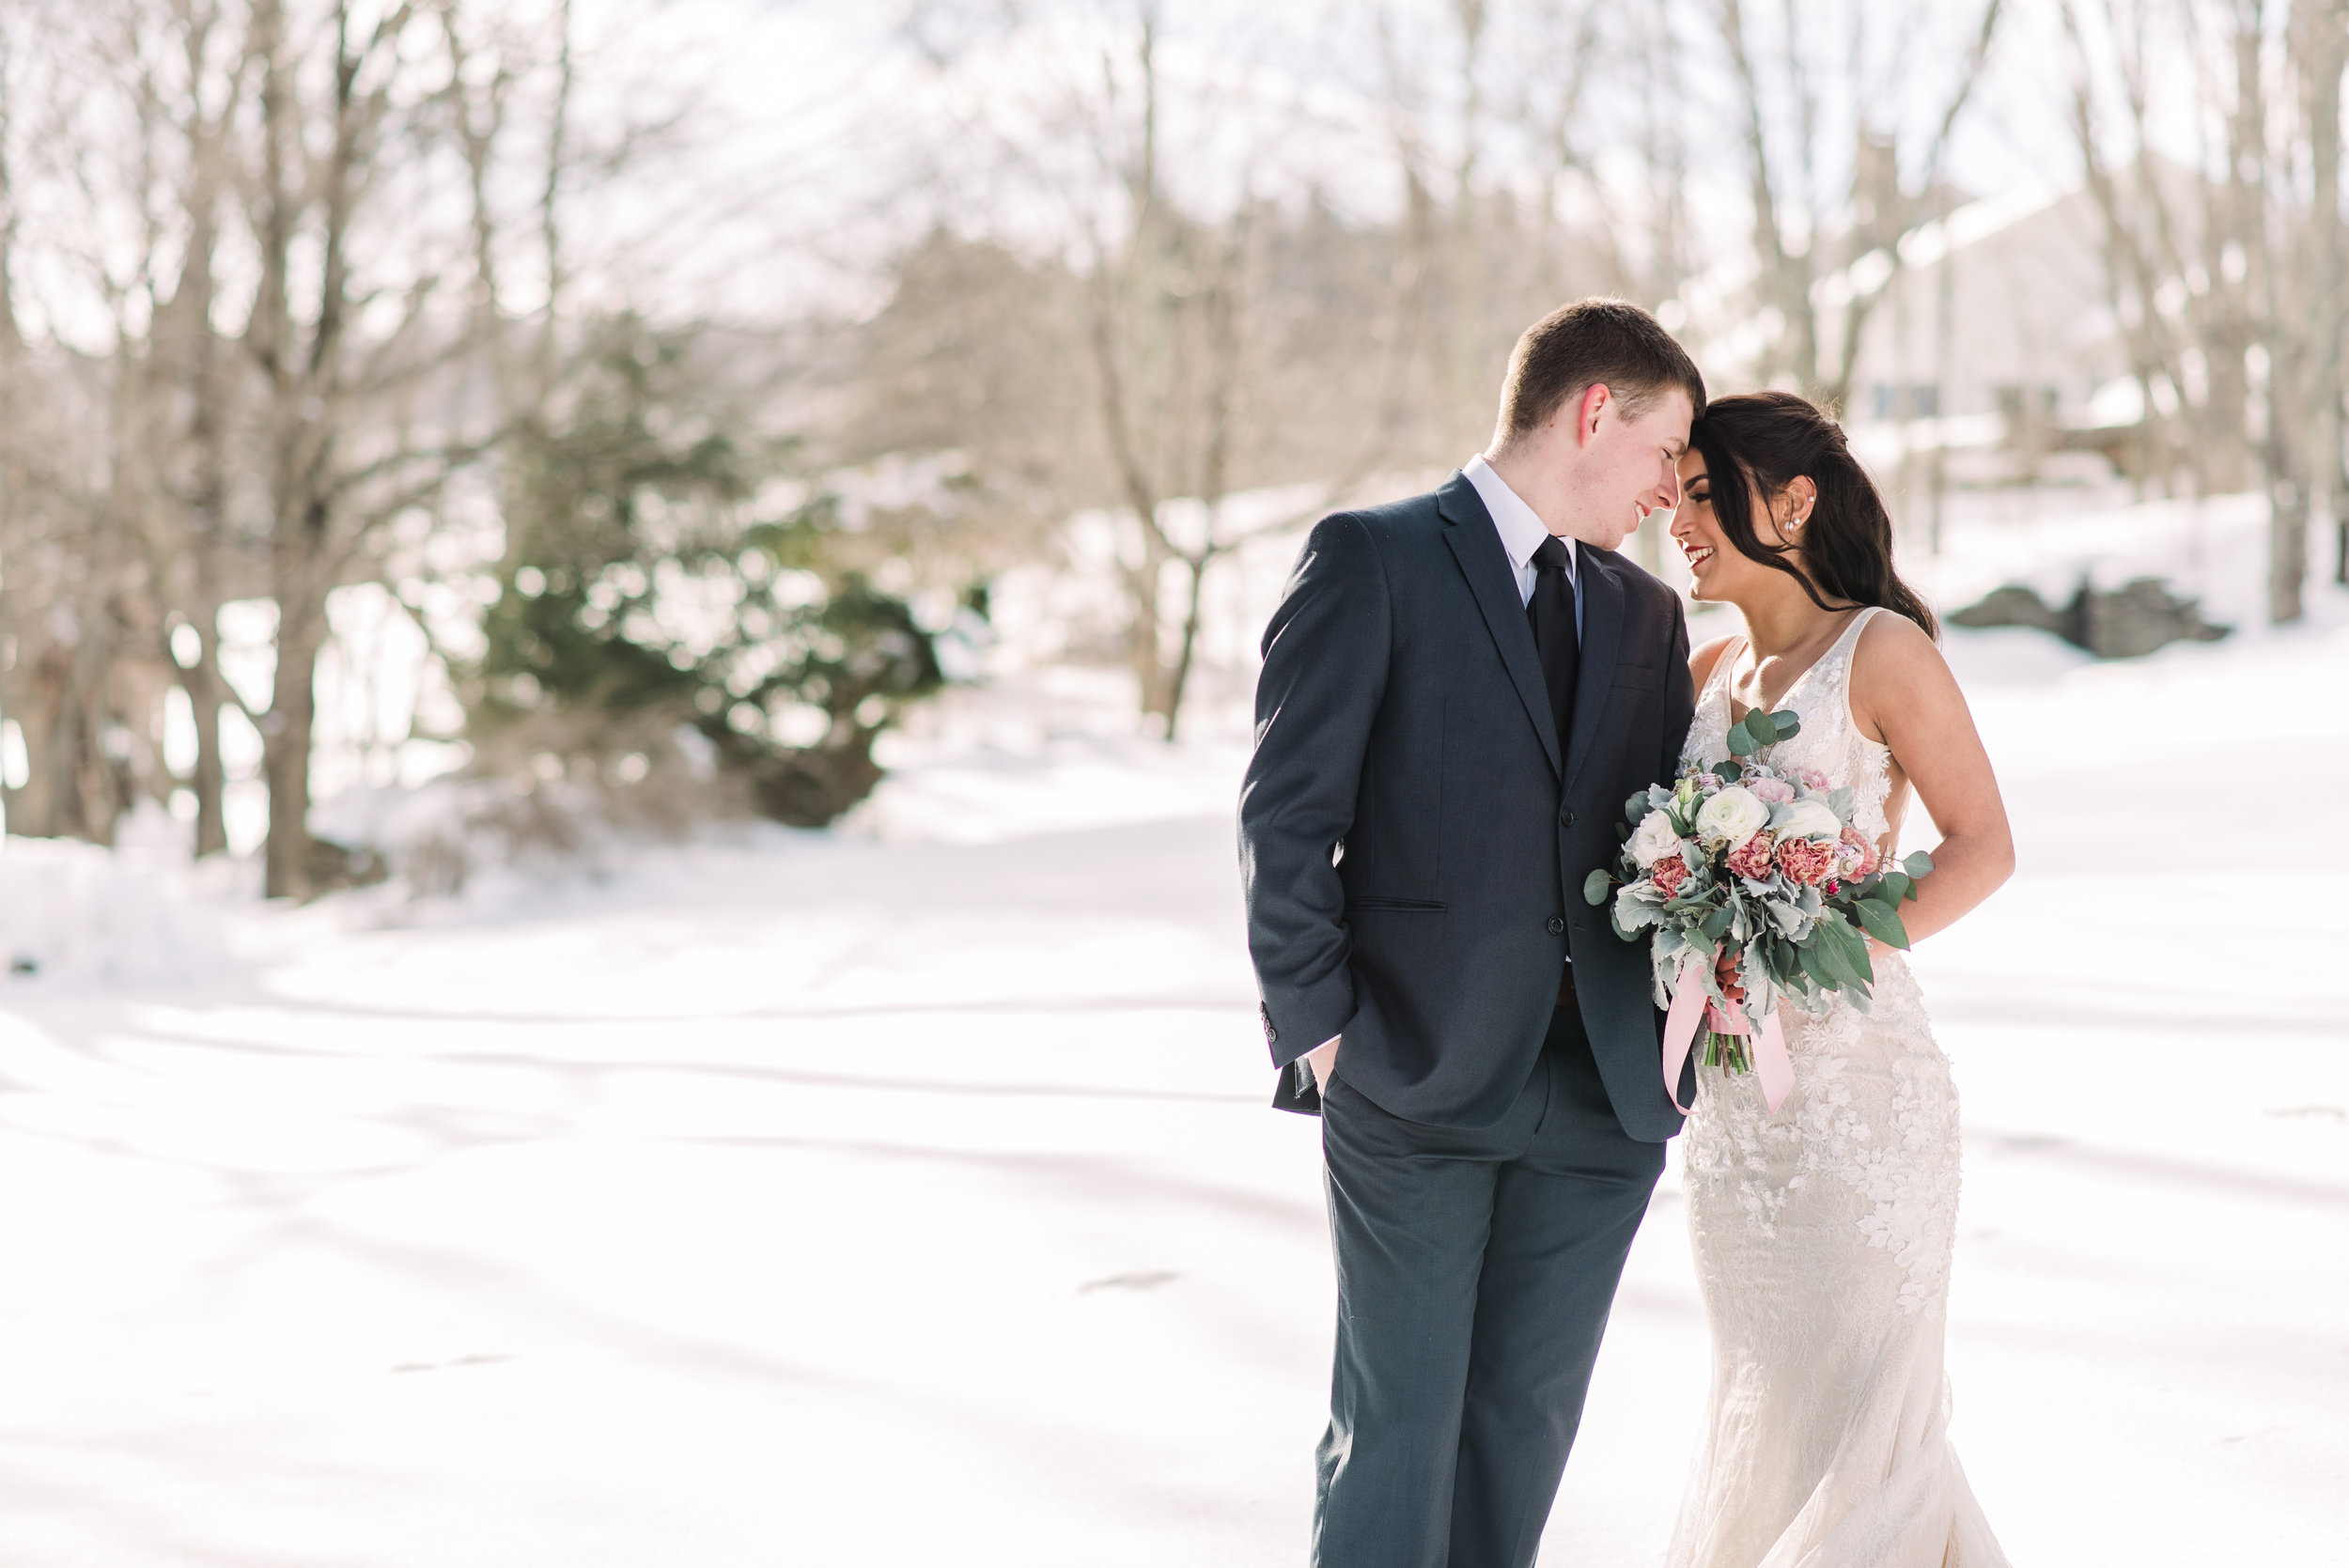 winter outdoors wedding couple photo